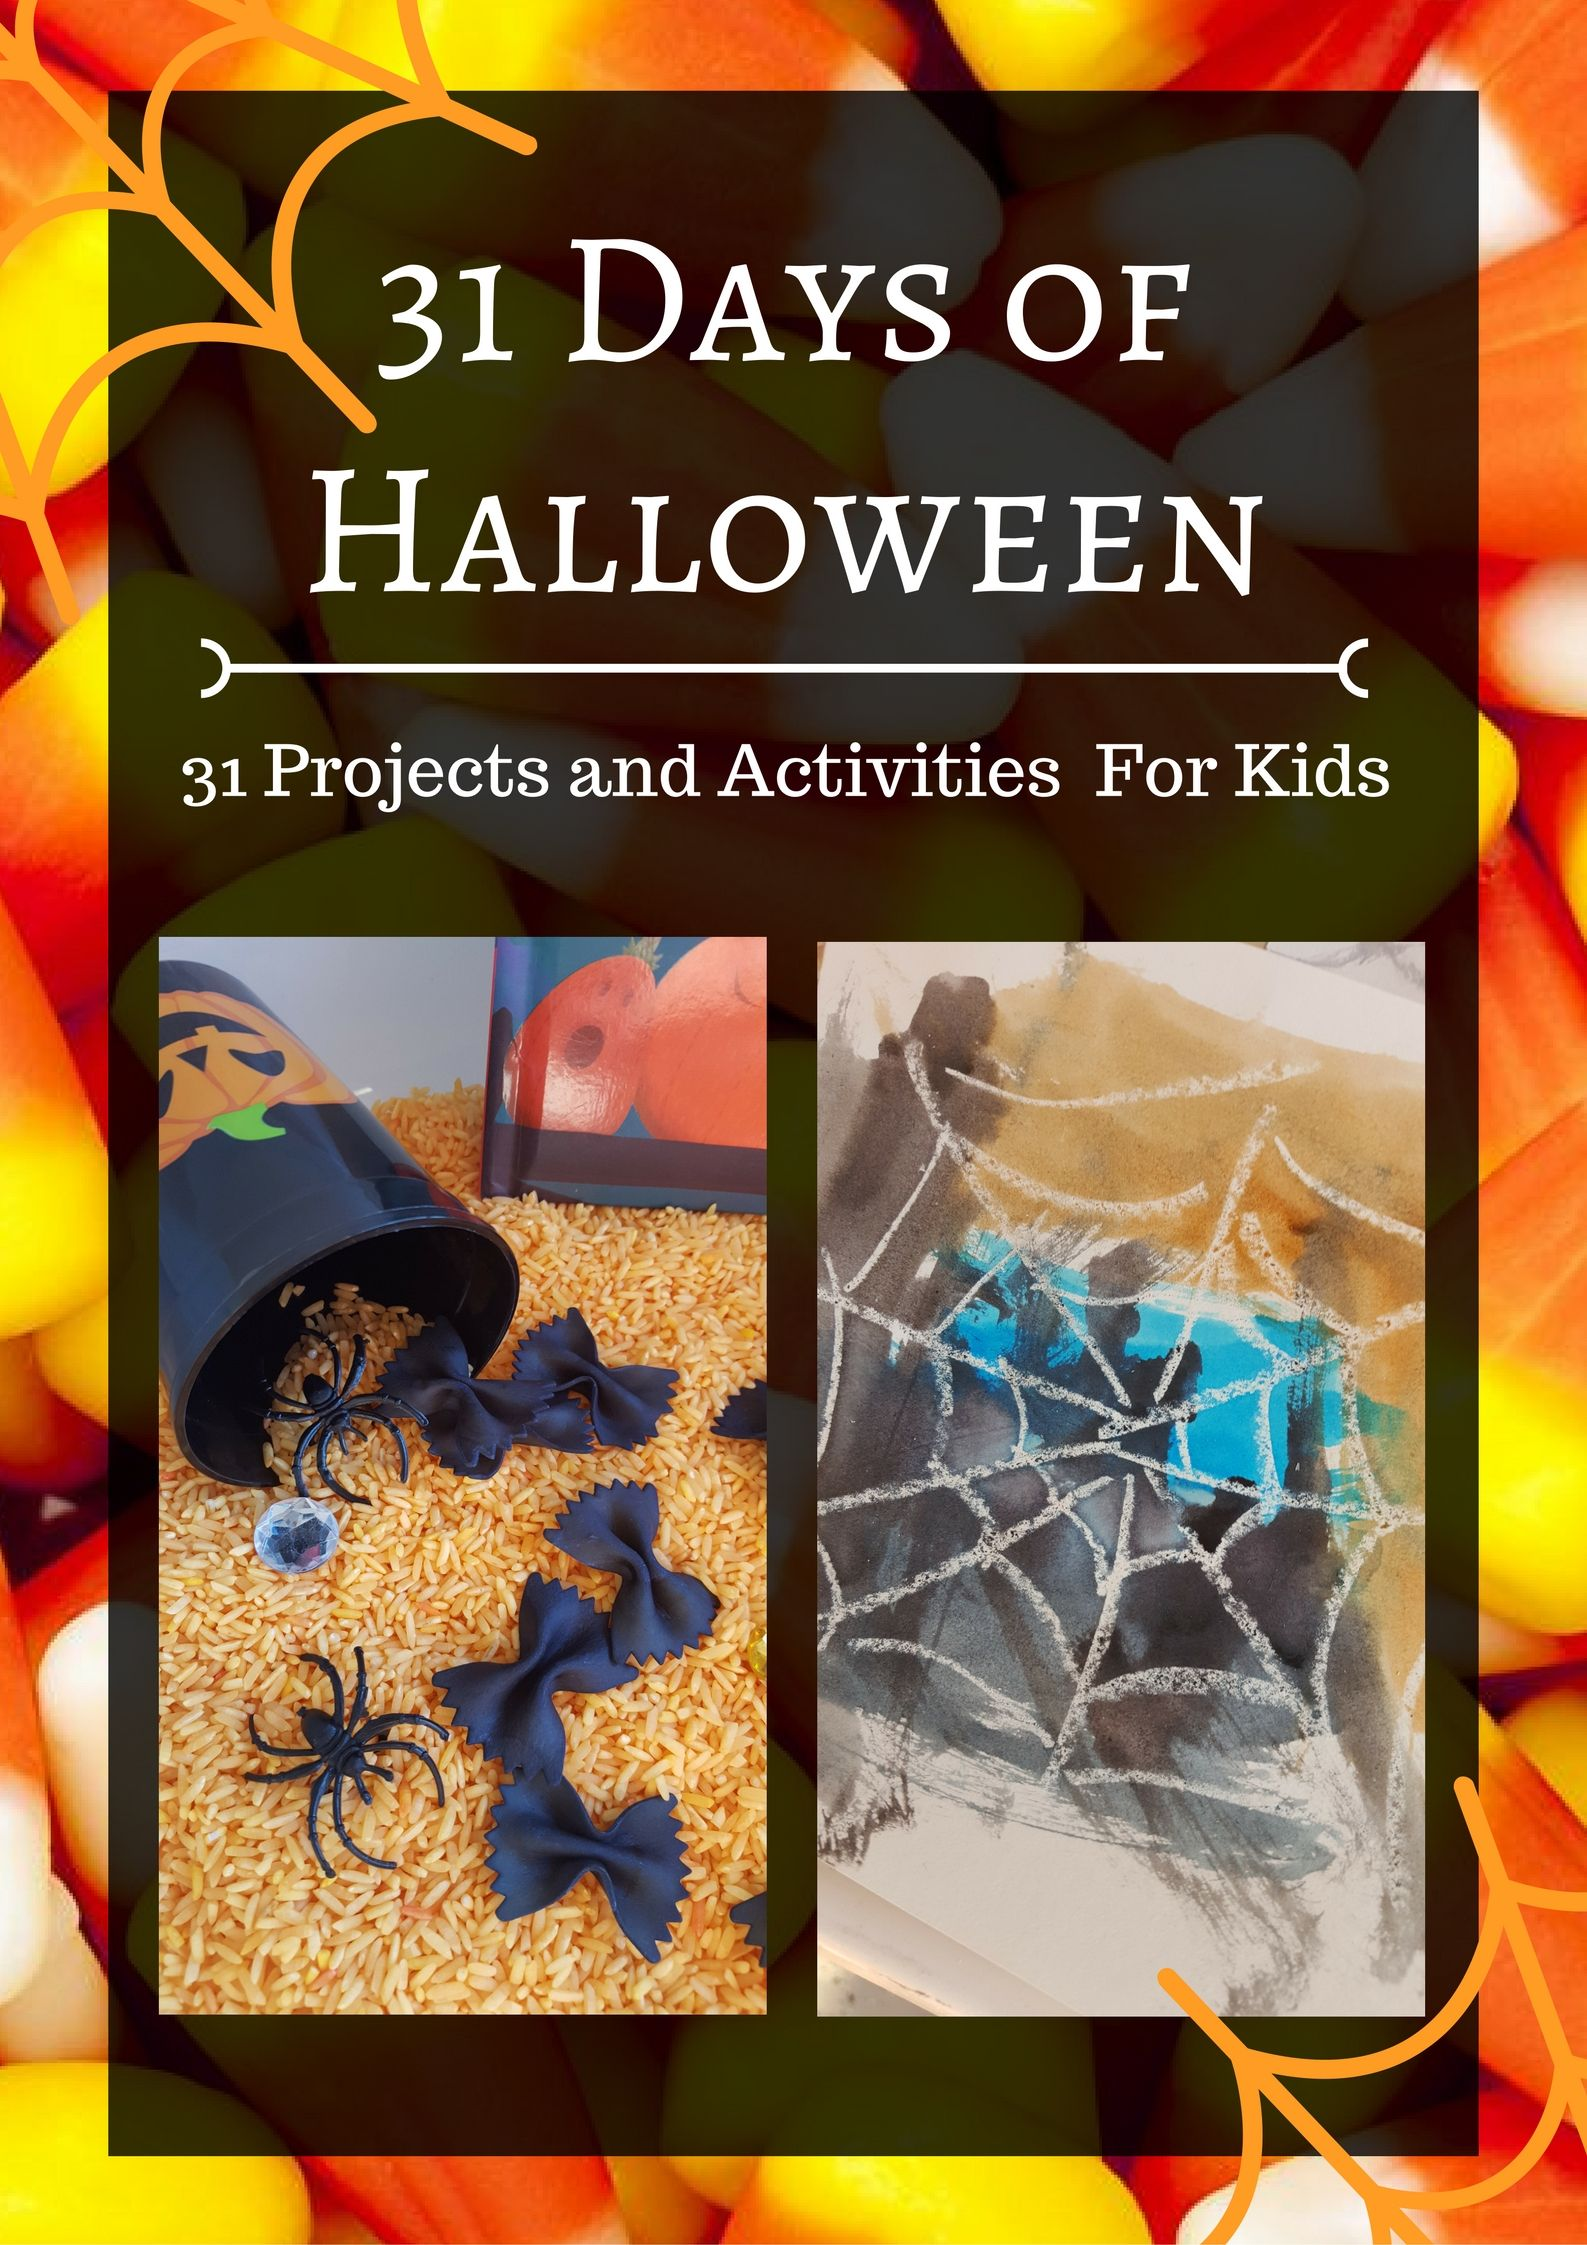 31 Days of Halloween: 31 Projects and Activities for Kids. Fun, hands on activities for toddlers and preschoolers. Sensory activities, art projects, busy bags, educational games, and more!